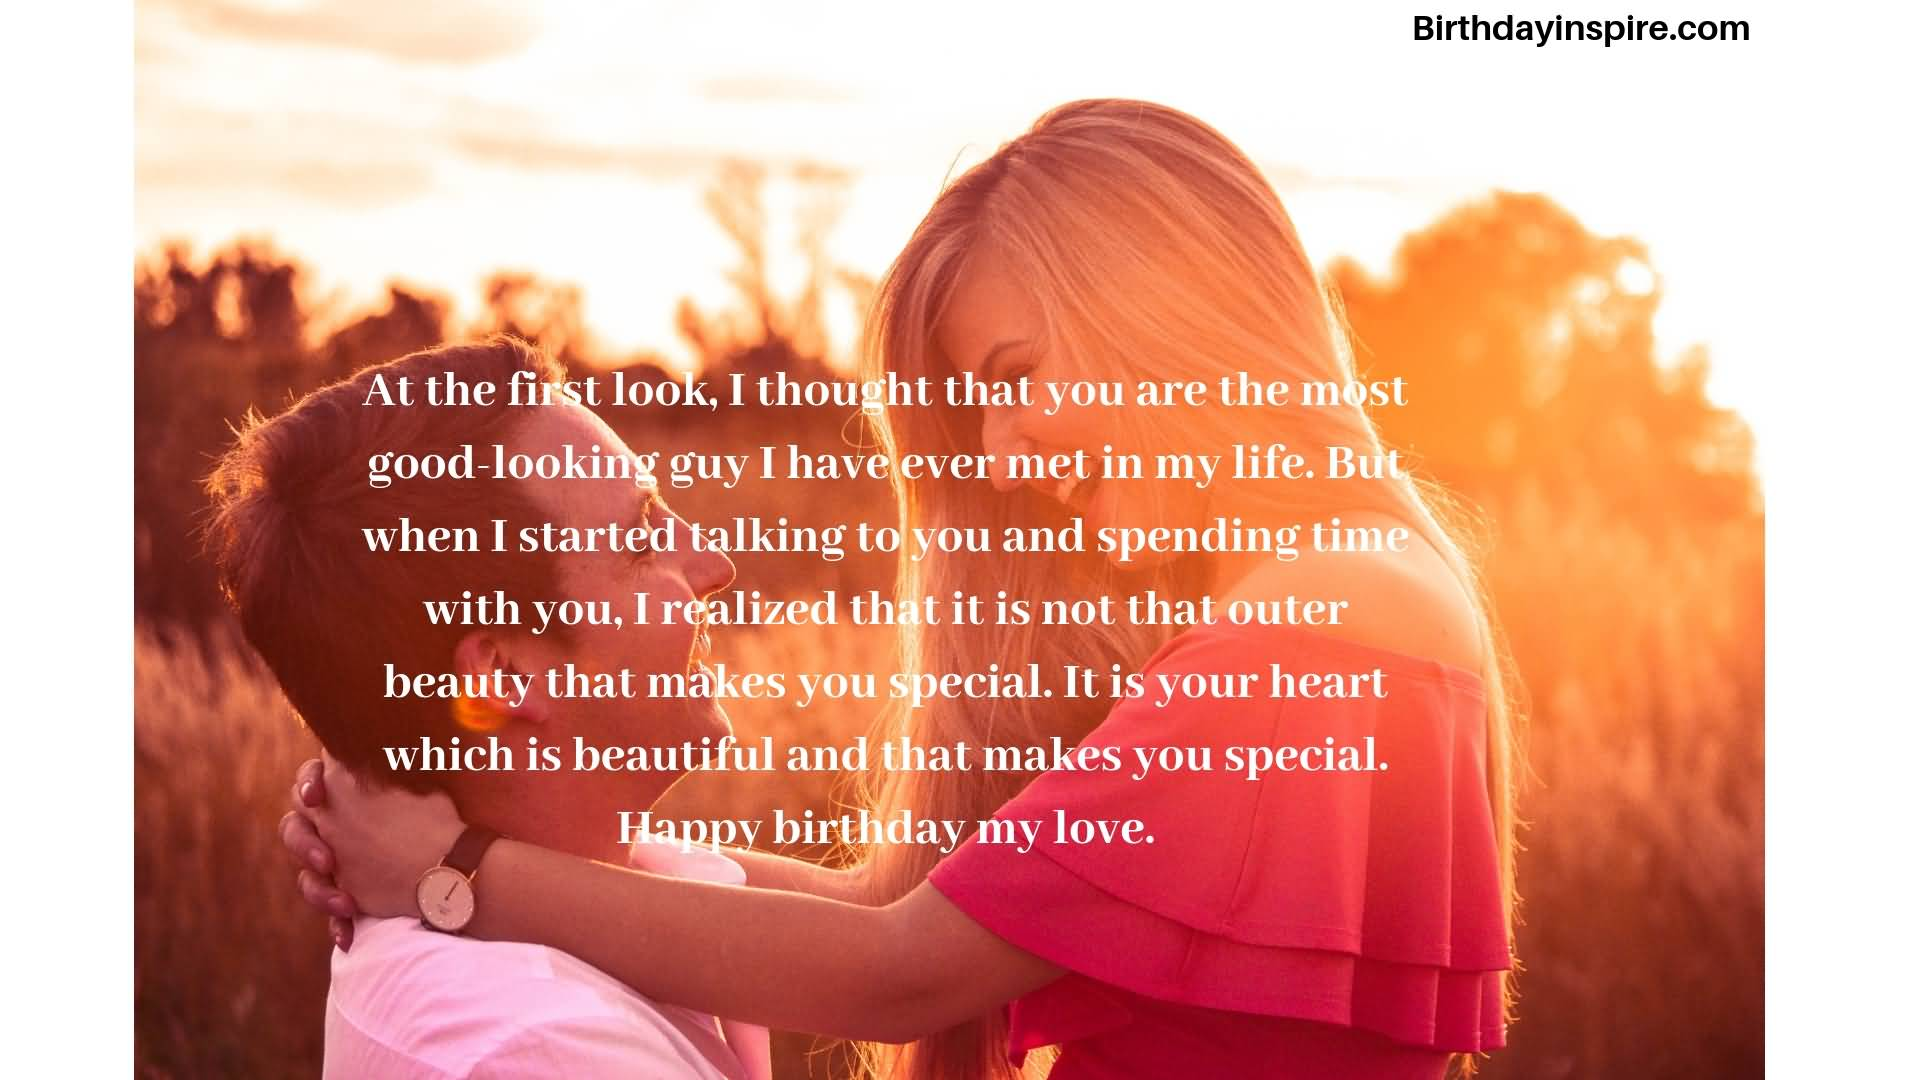 At The First Look I Thought That You Are Most For Dear Boyfriend Birthday Messages Wish From Girlfriend